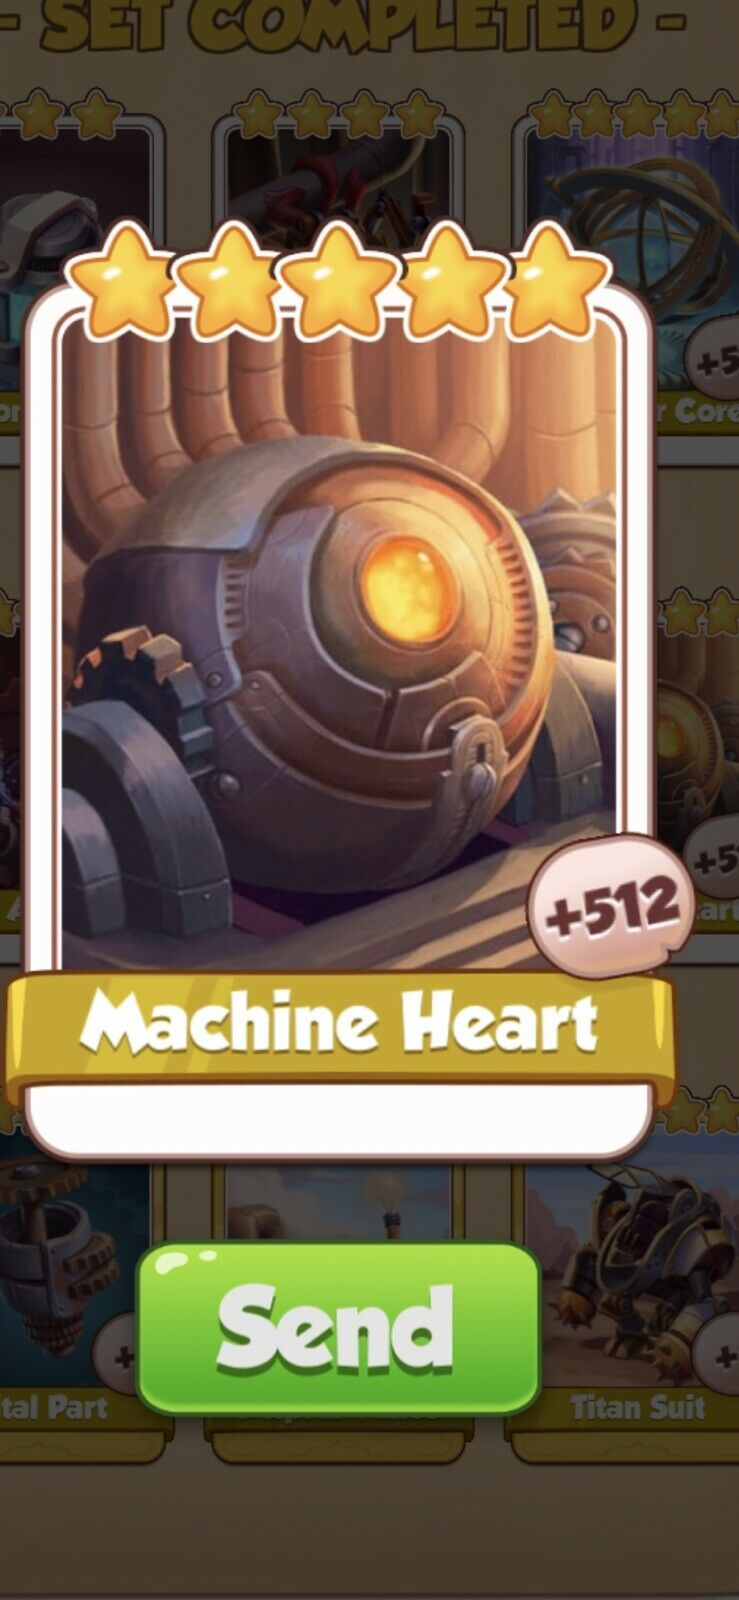 X 5 Machine Heart Cards from Steampunk Set Coin Master Card ( Fast Send )